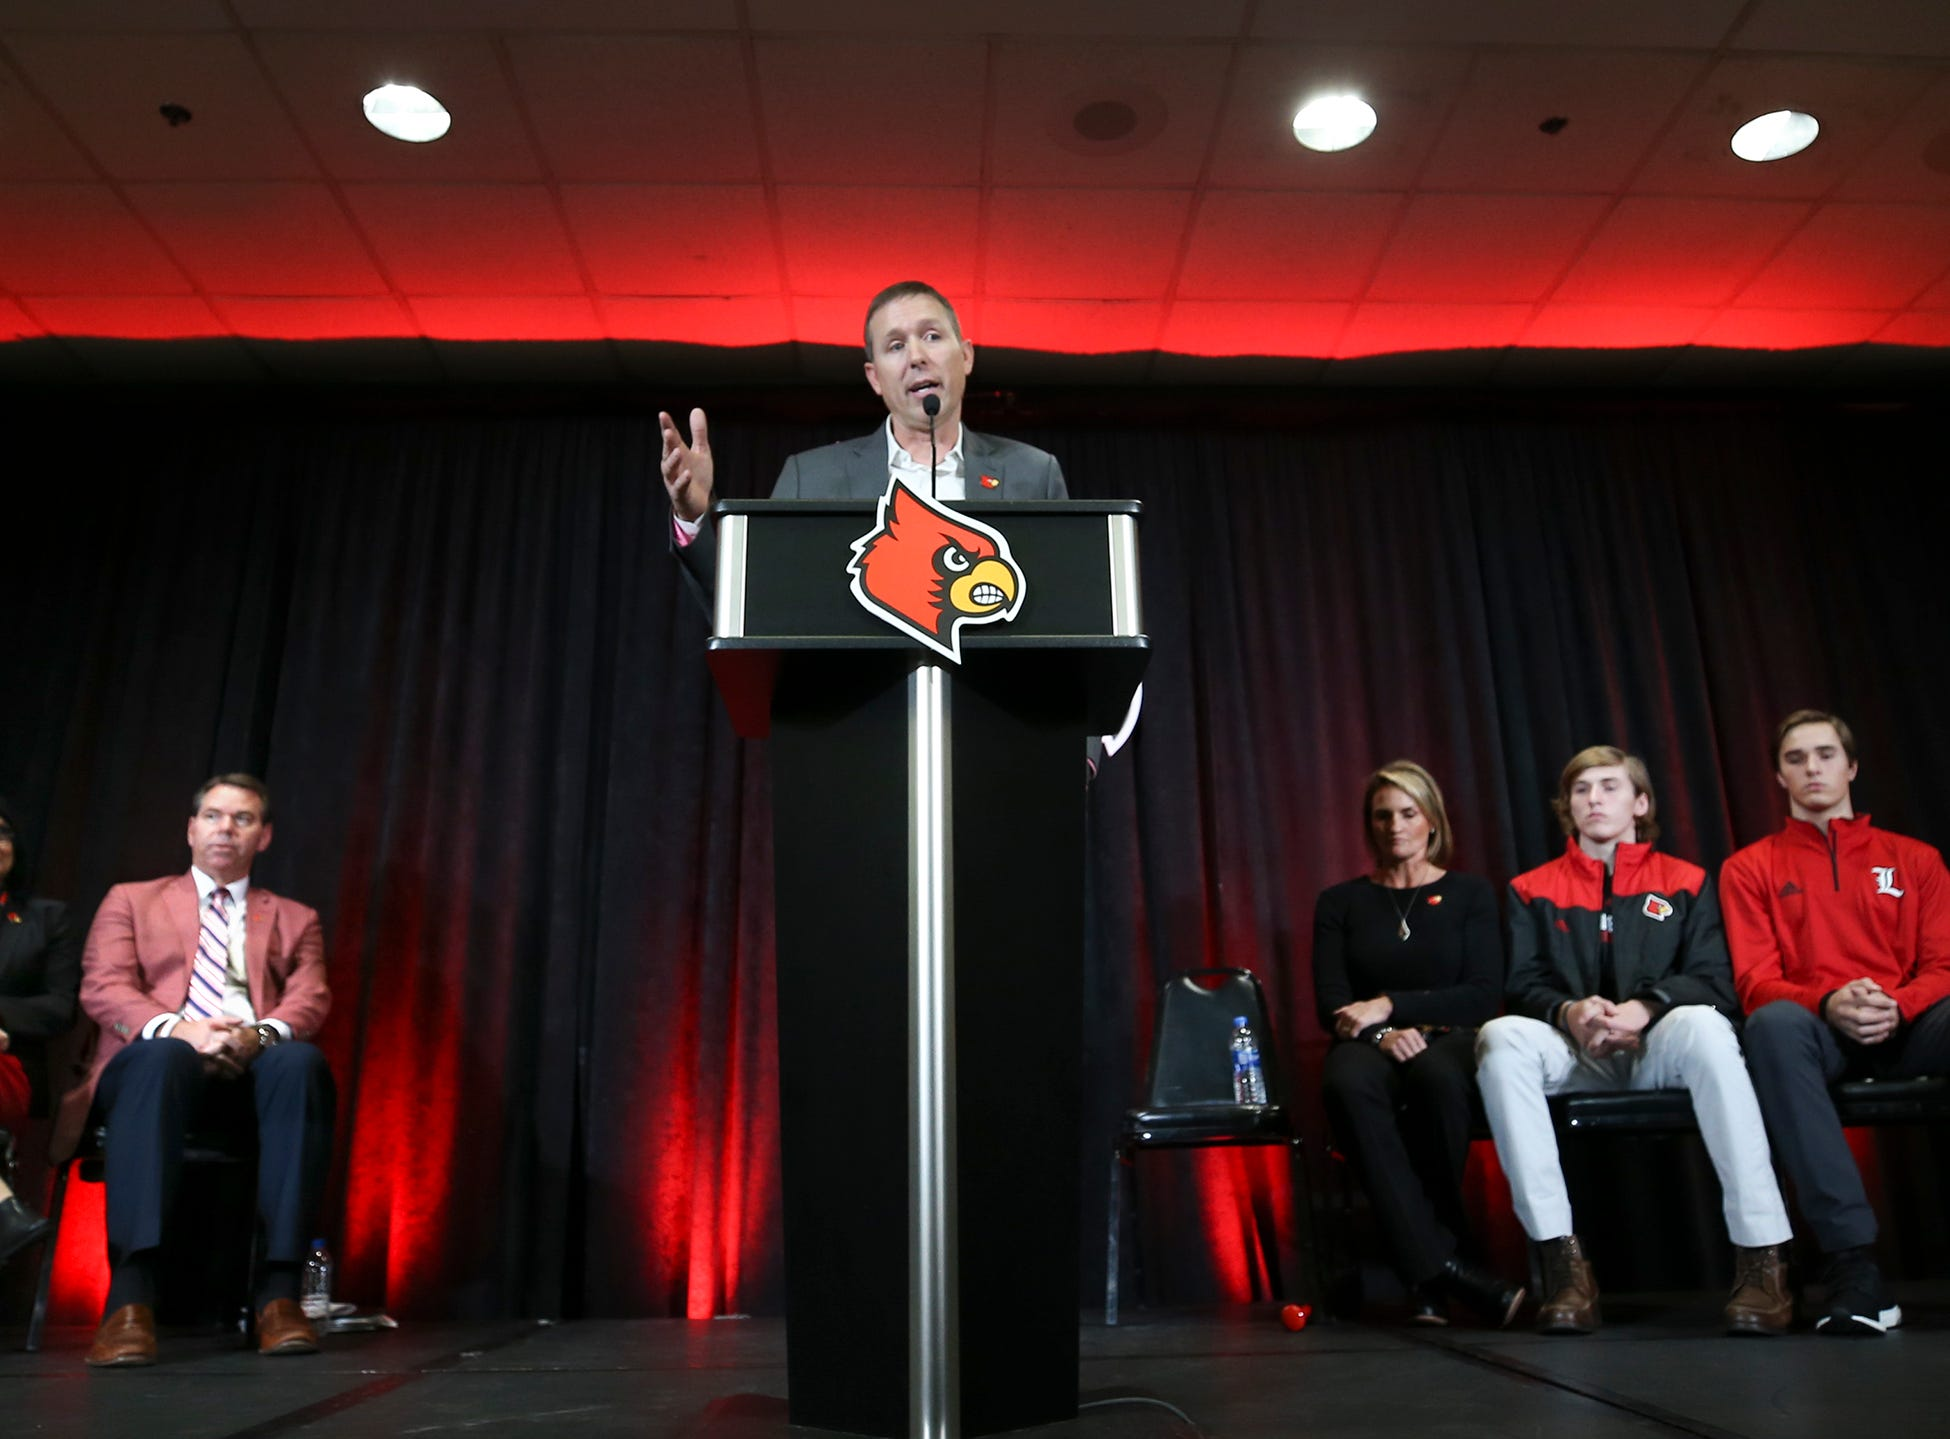 Coach Scott Satterfield speaks after being named coach at Louisville on Tuesday evening.  Satterfield's family is on the right.  